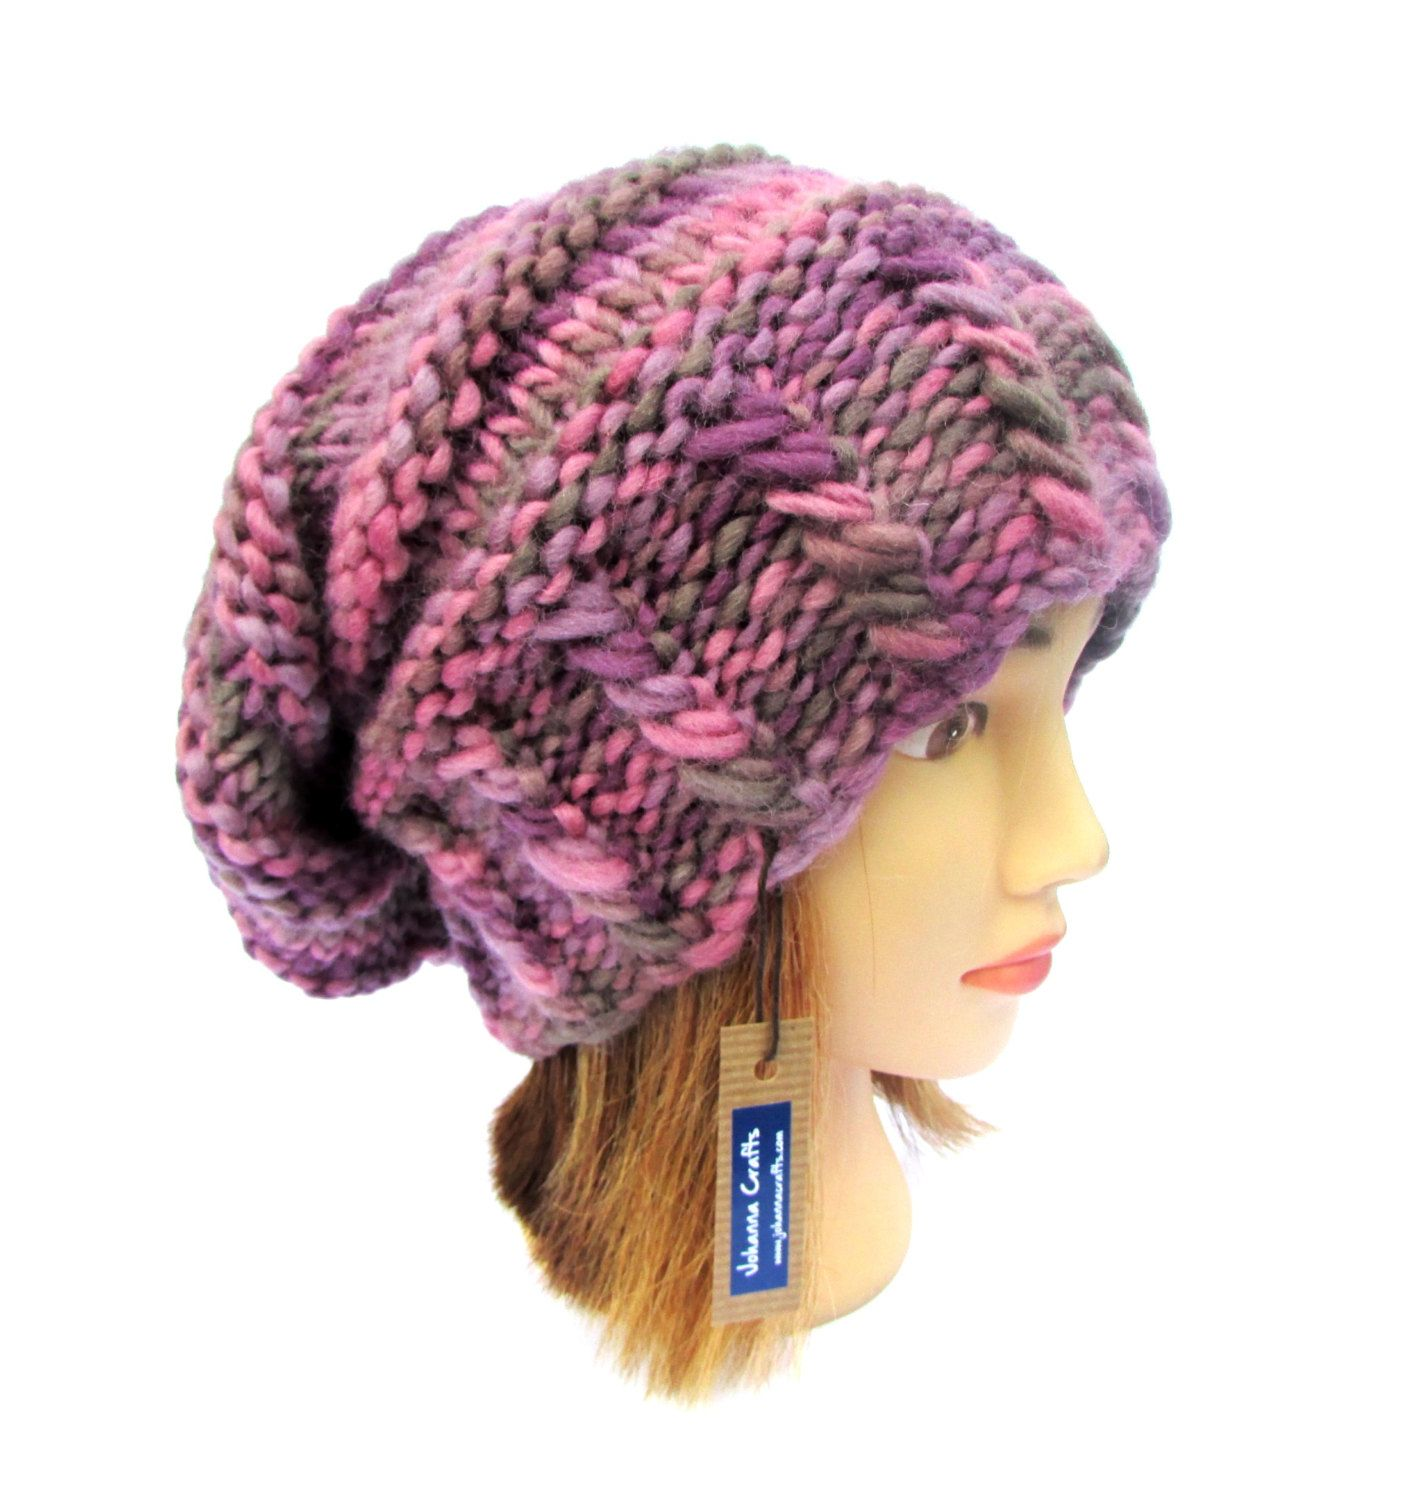 5e73d410852 Slouchy beanie hat pink and purple slouch hats for women - funky knit hat -  fun multi-color hat - pretty hat for women - warm winter beanie (46.00 USD)  by ...